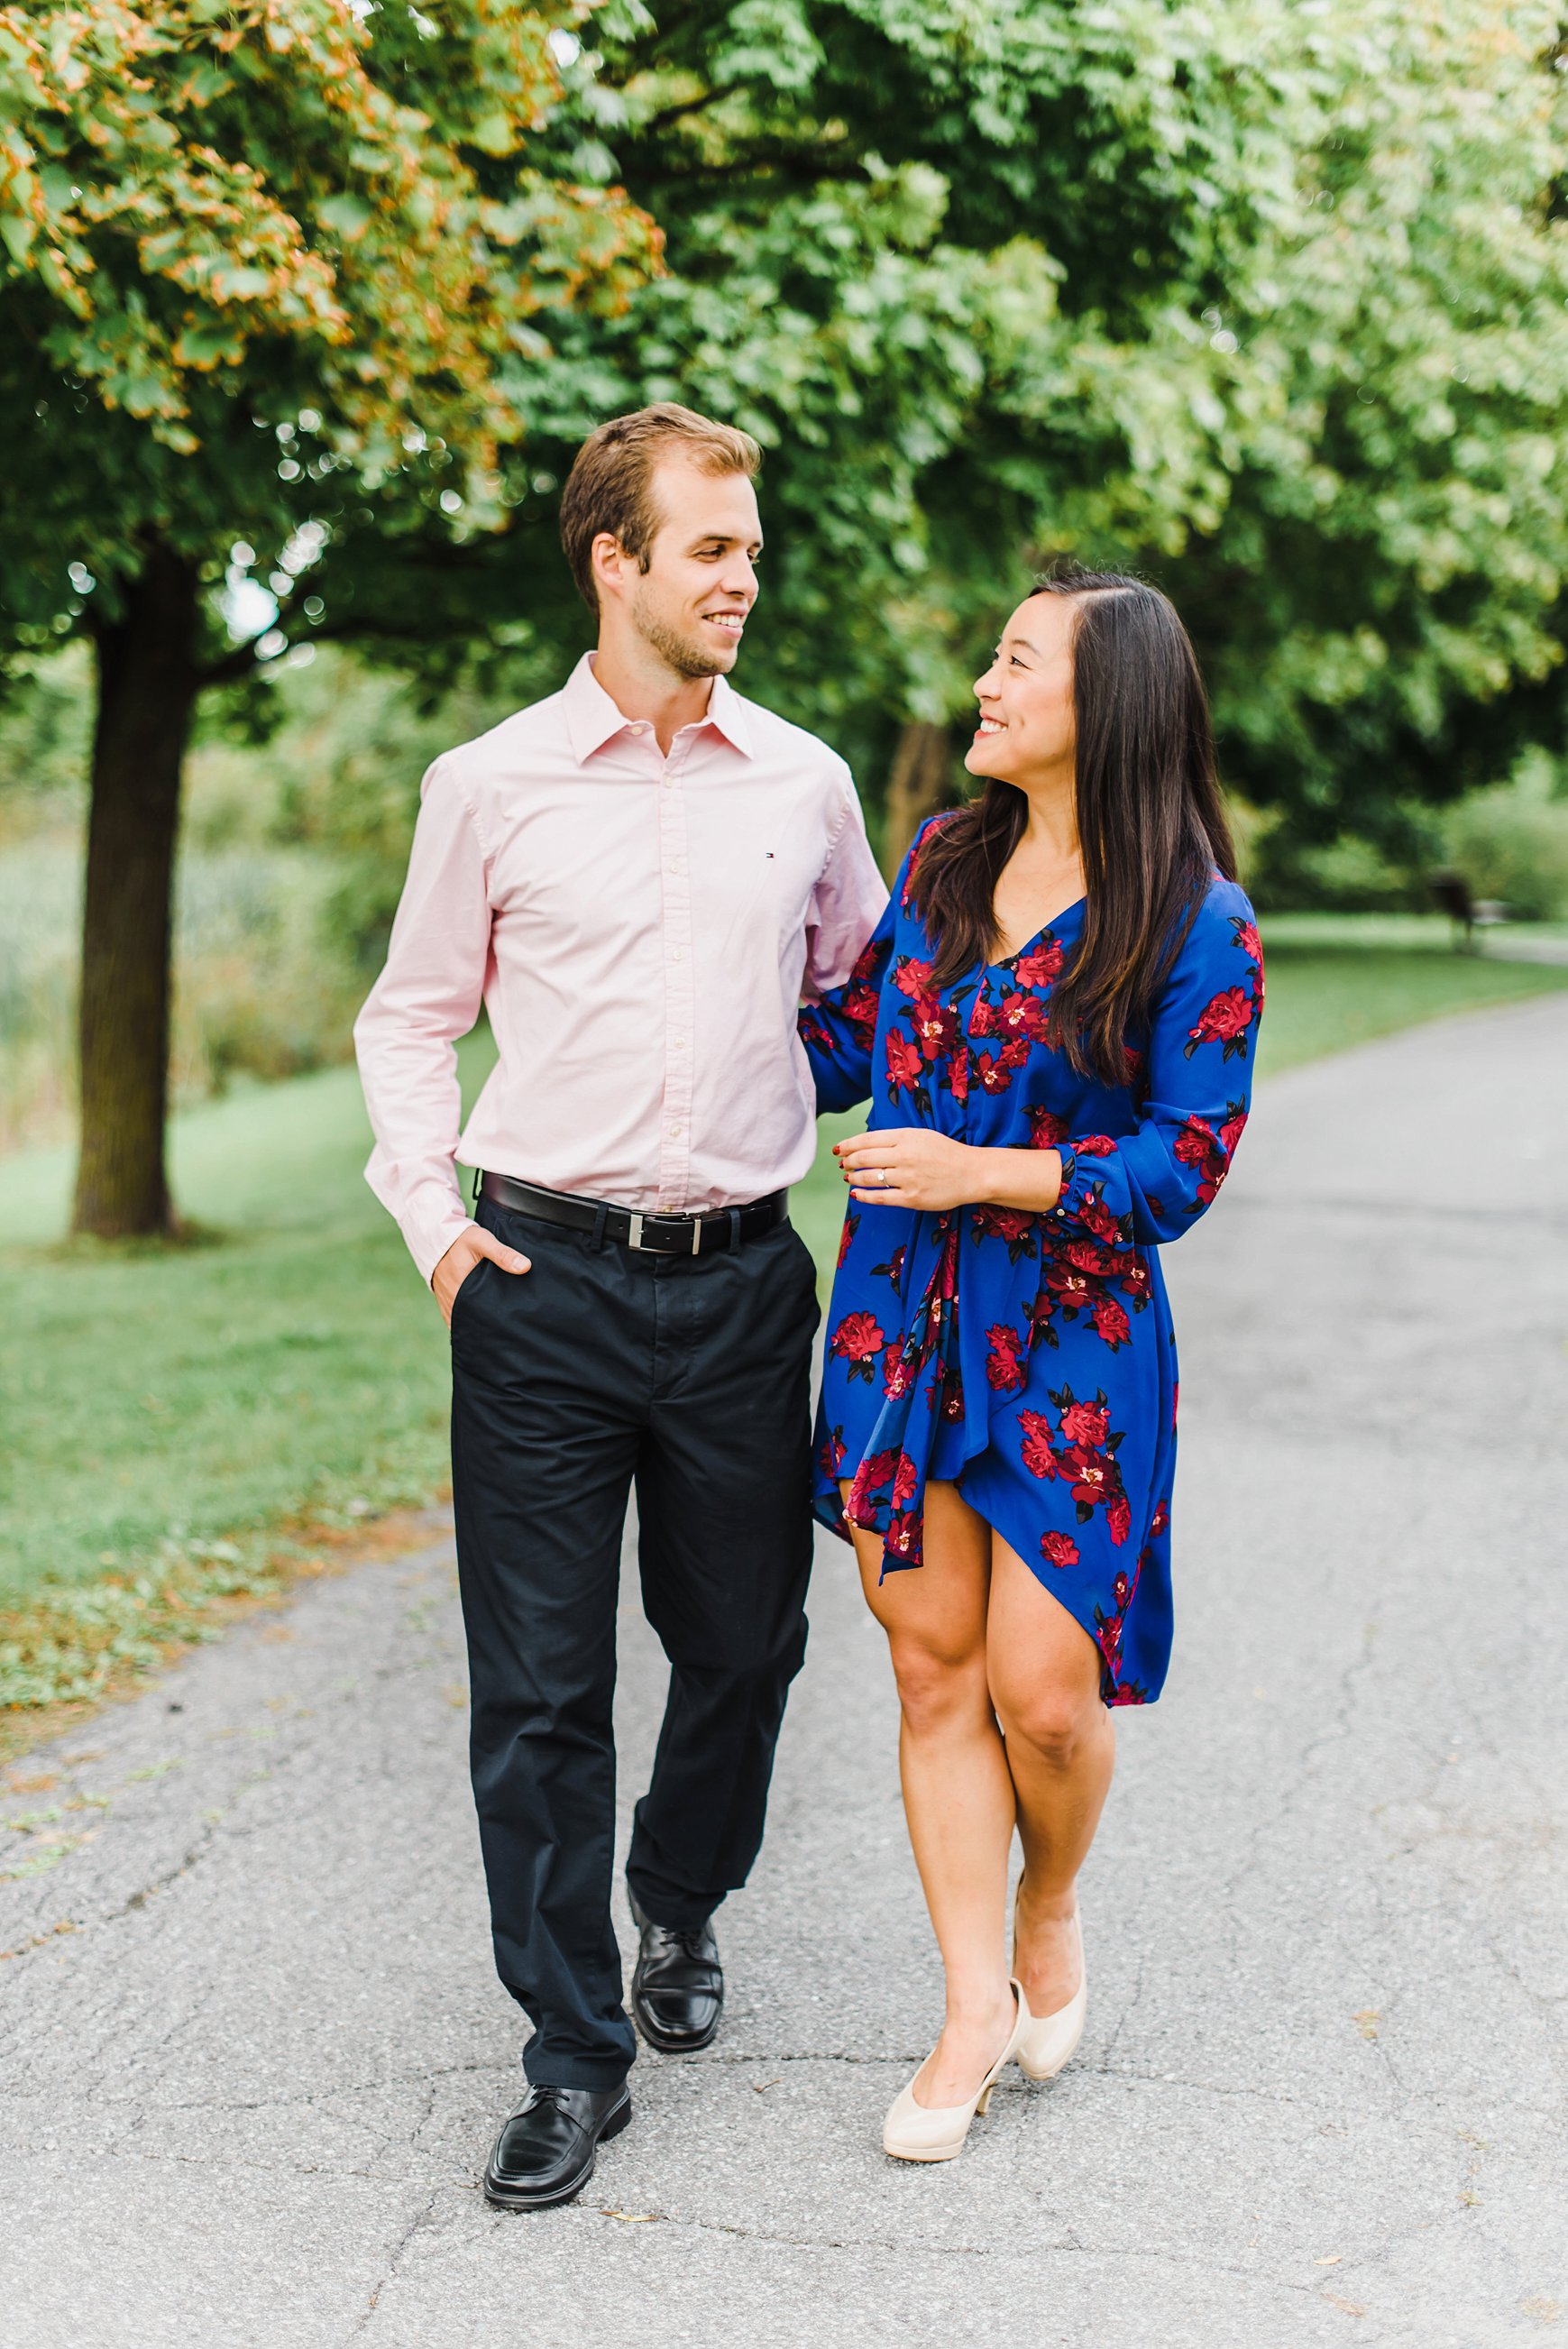 light airy indie fine art ottawa wedding photographer | Ali and Batoul Photography_0919.jpg